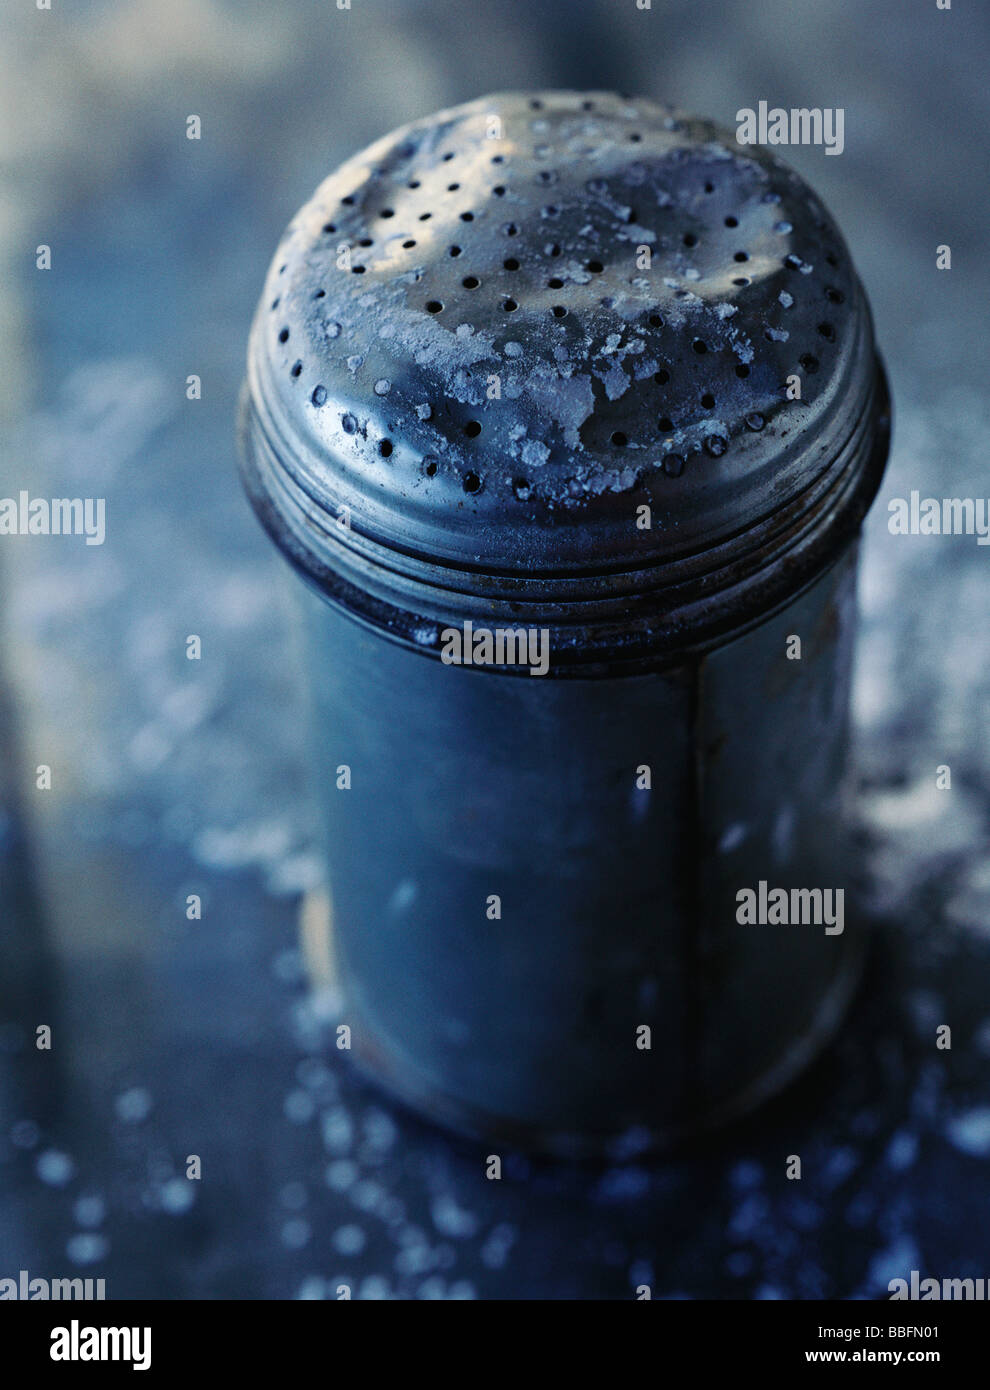 Powdered sugar shaker - Stock Image